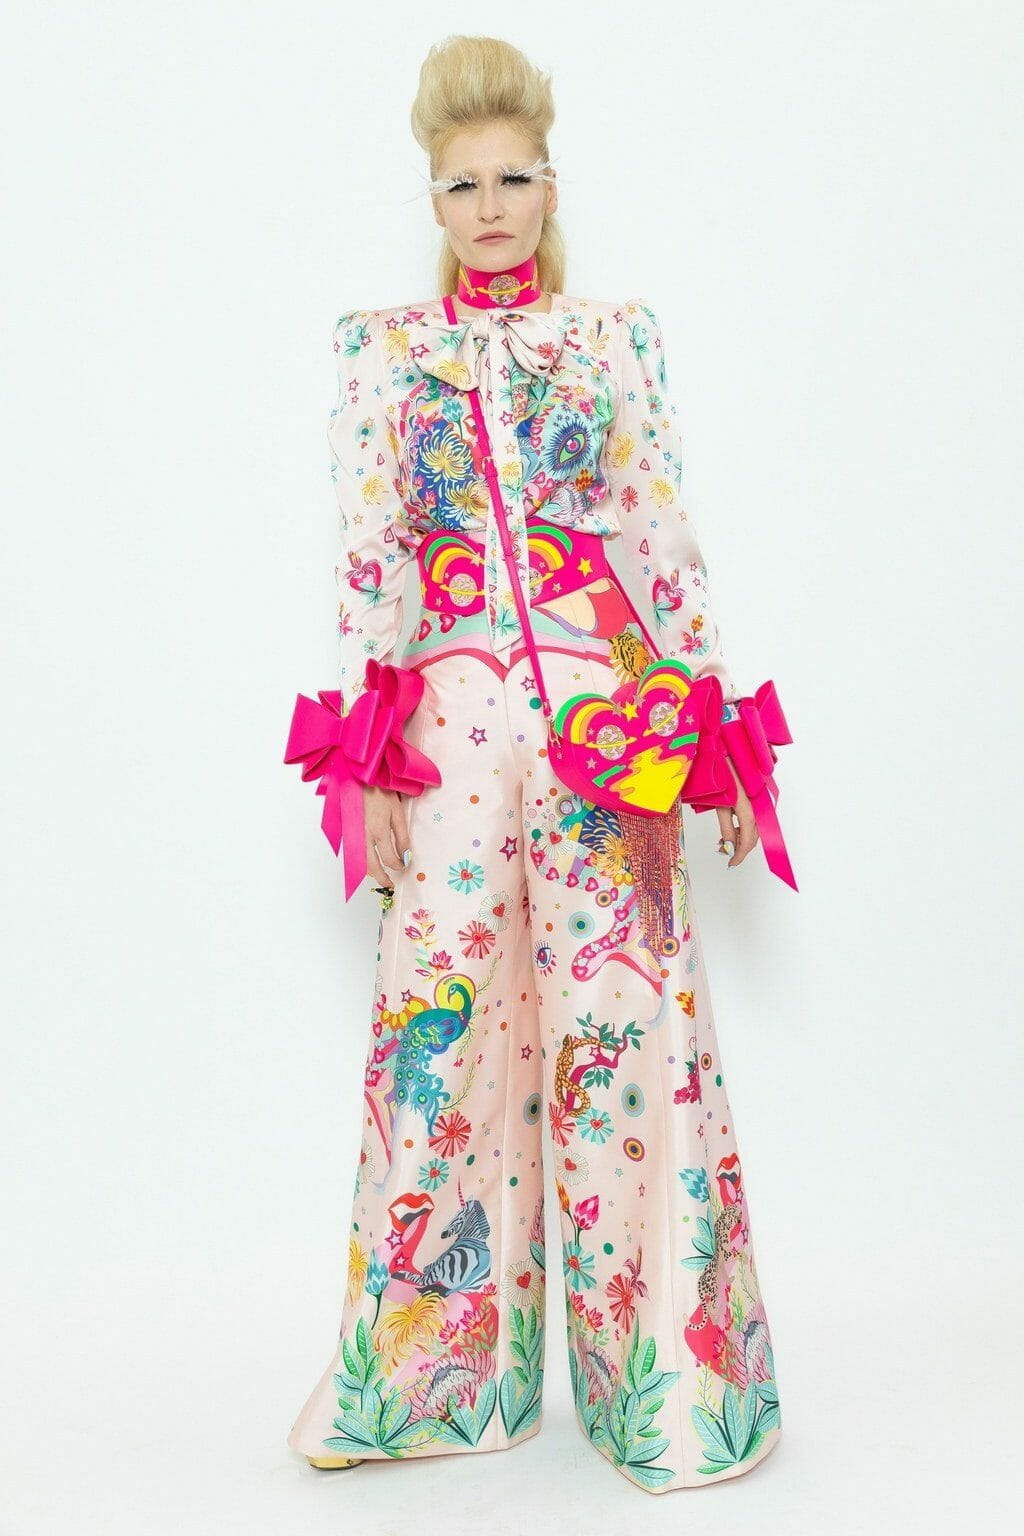 Manish Arora Spring Summer 2020 Paris Fashion Week. RUNWAY MAGAZINE ® Collections. RUNWAY NOW / RUNWAY NEW